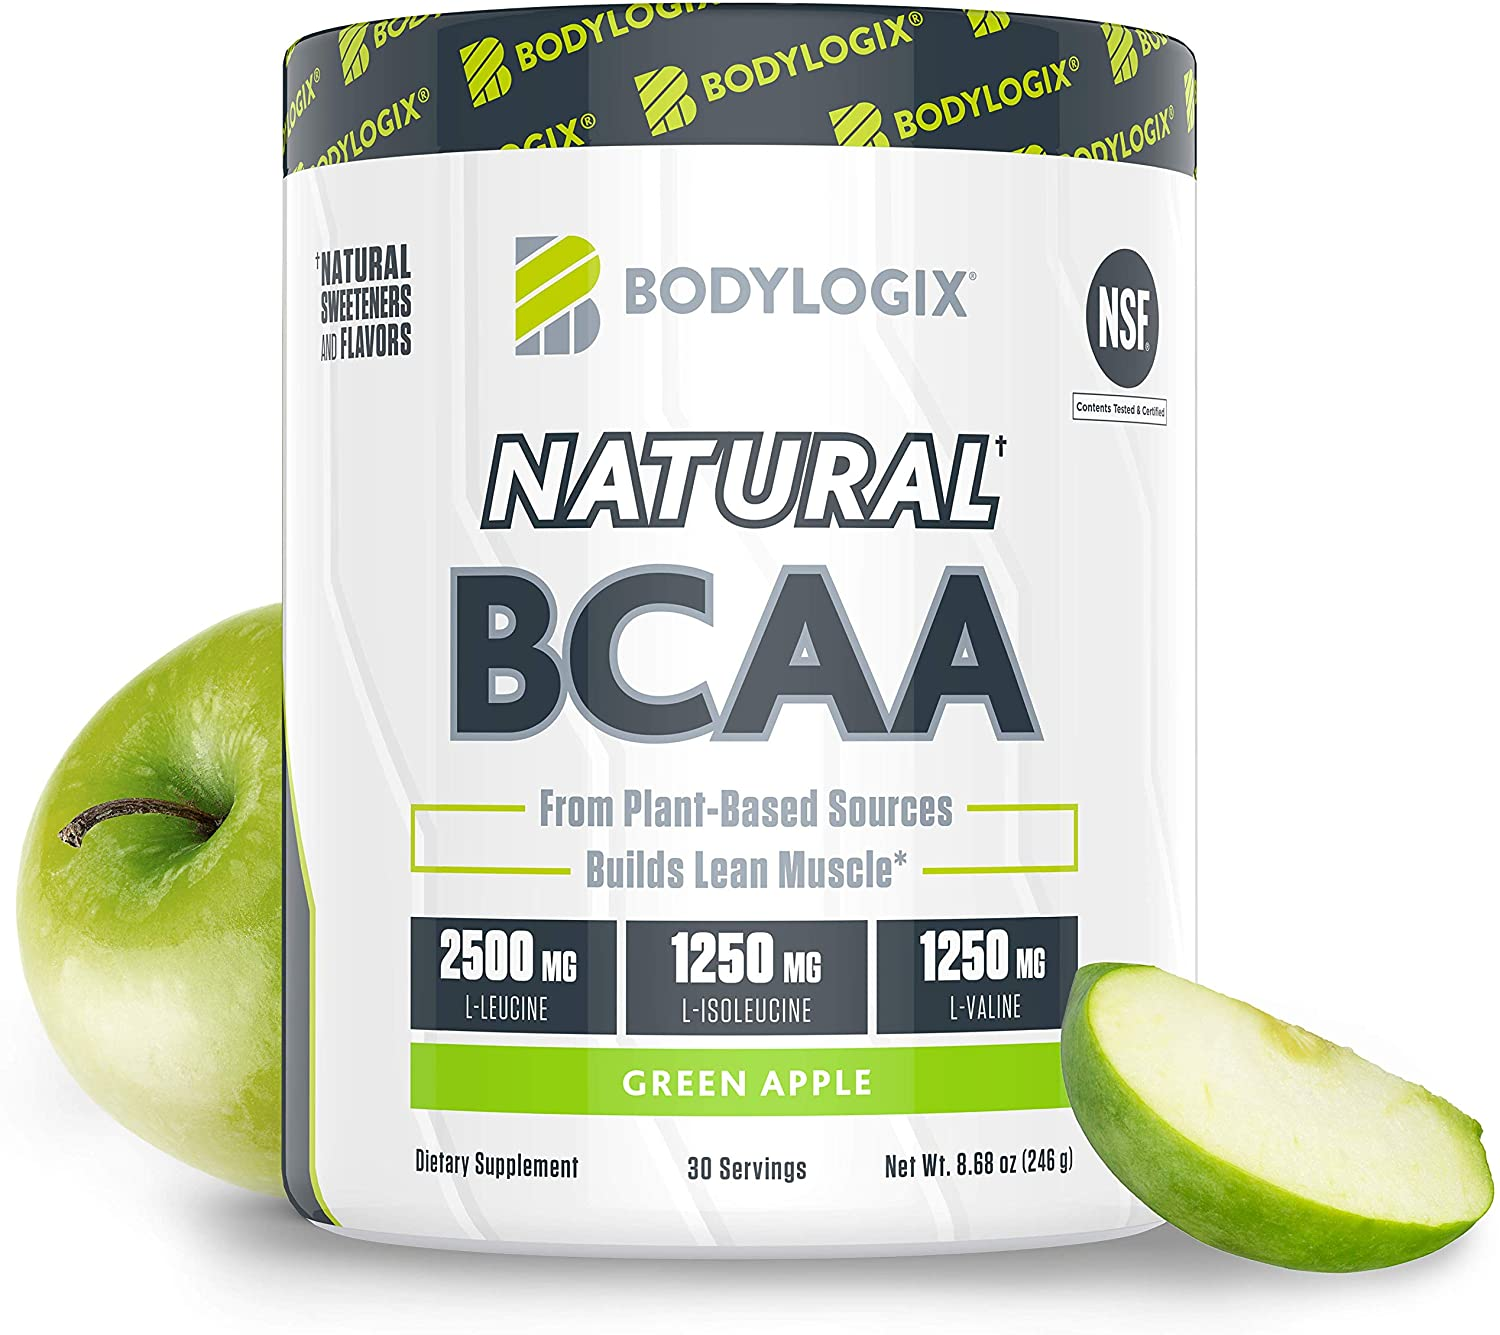 Bodylogix Natural BCAA Powder, NSF Certified, Green Apple, 30 Servings